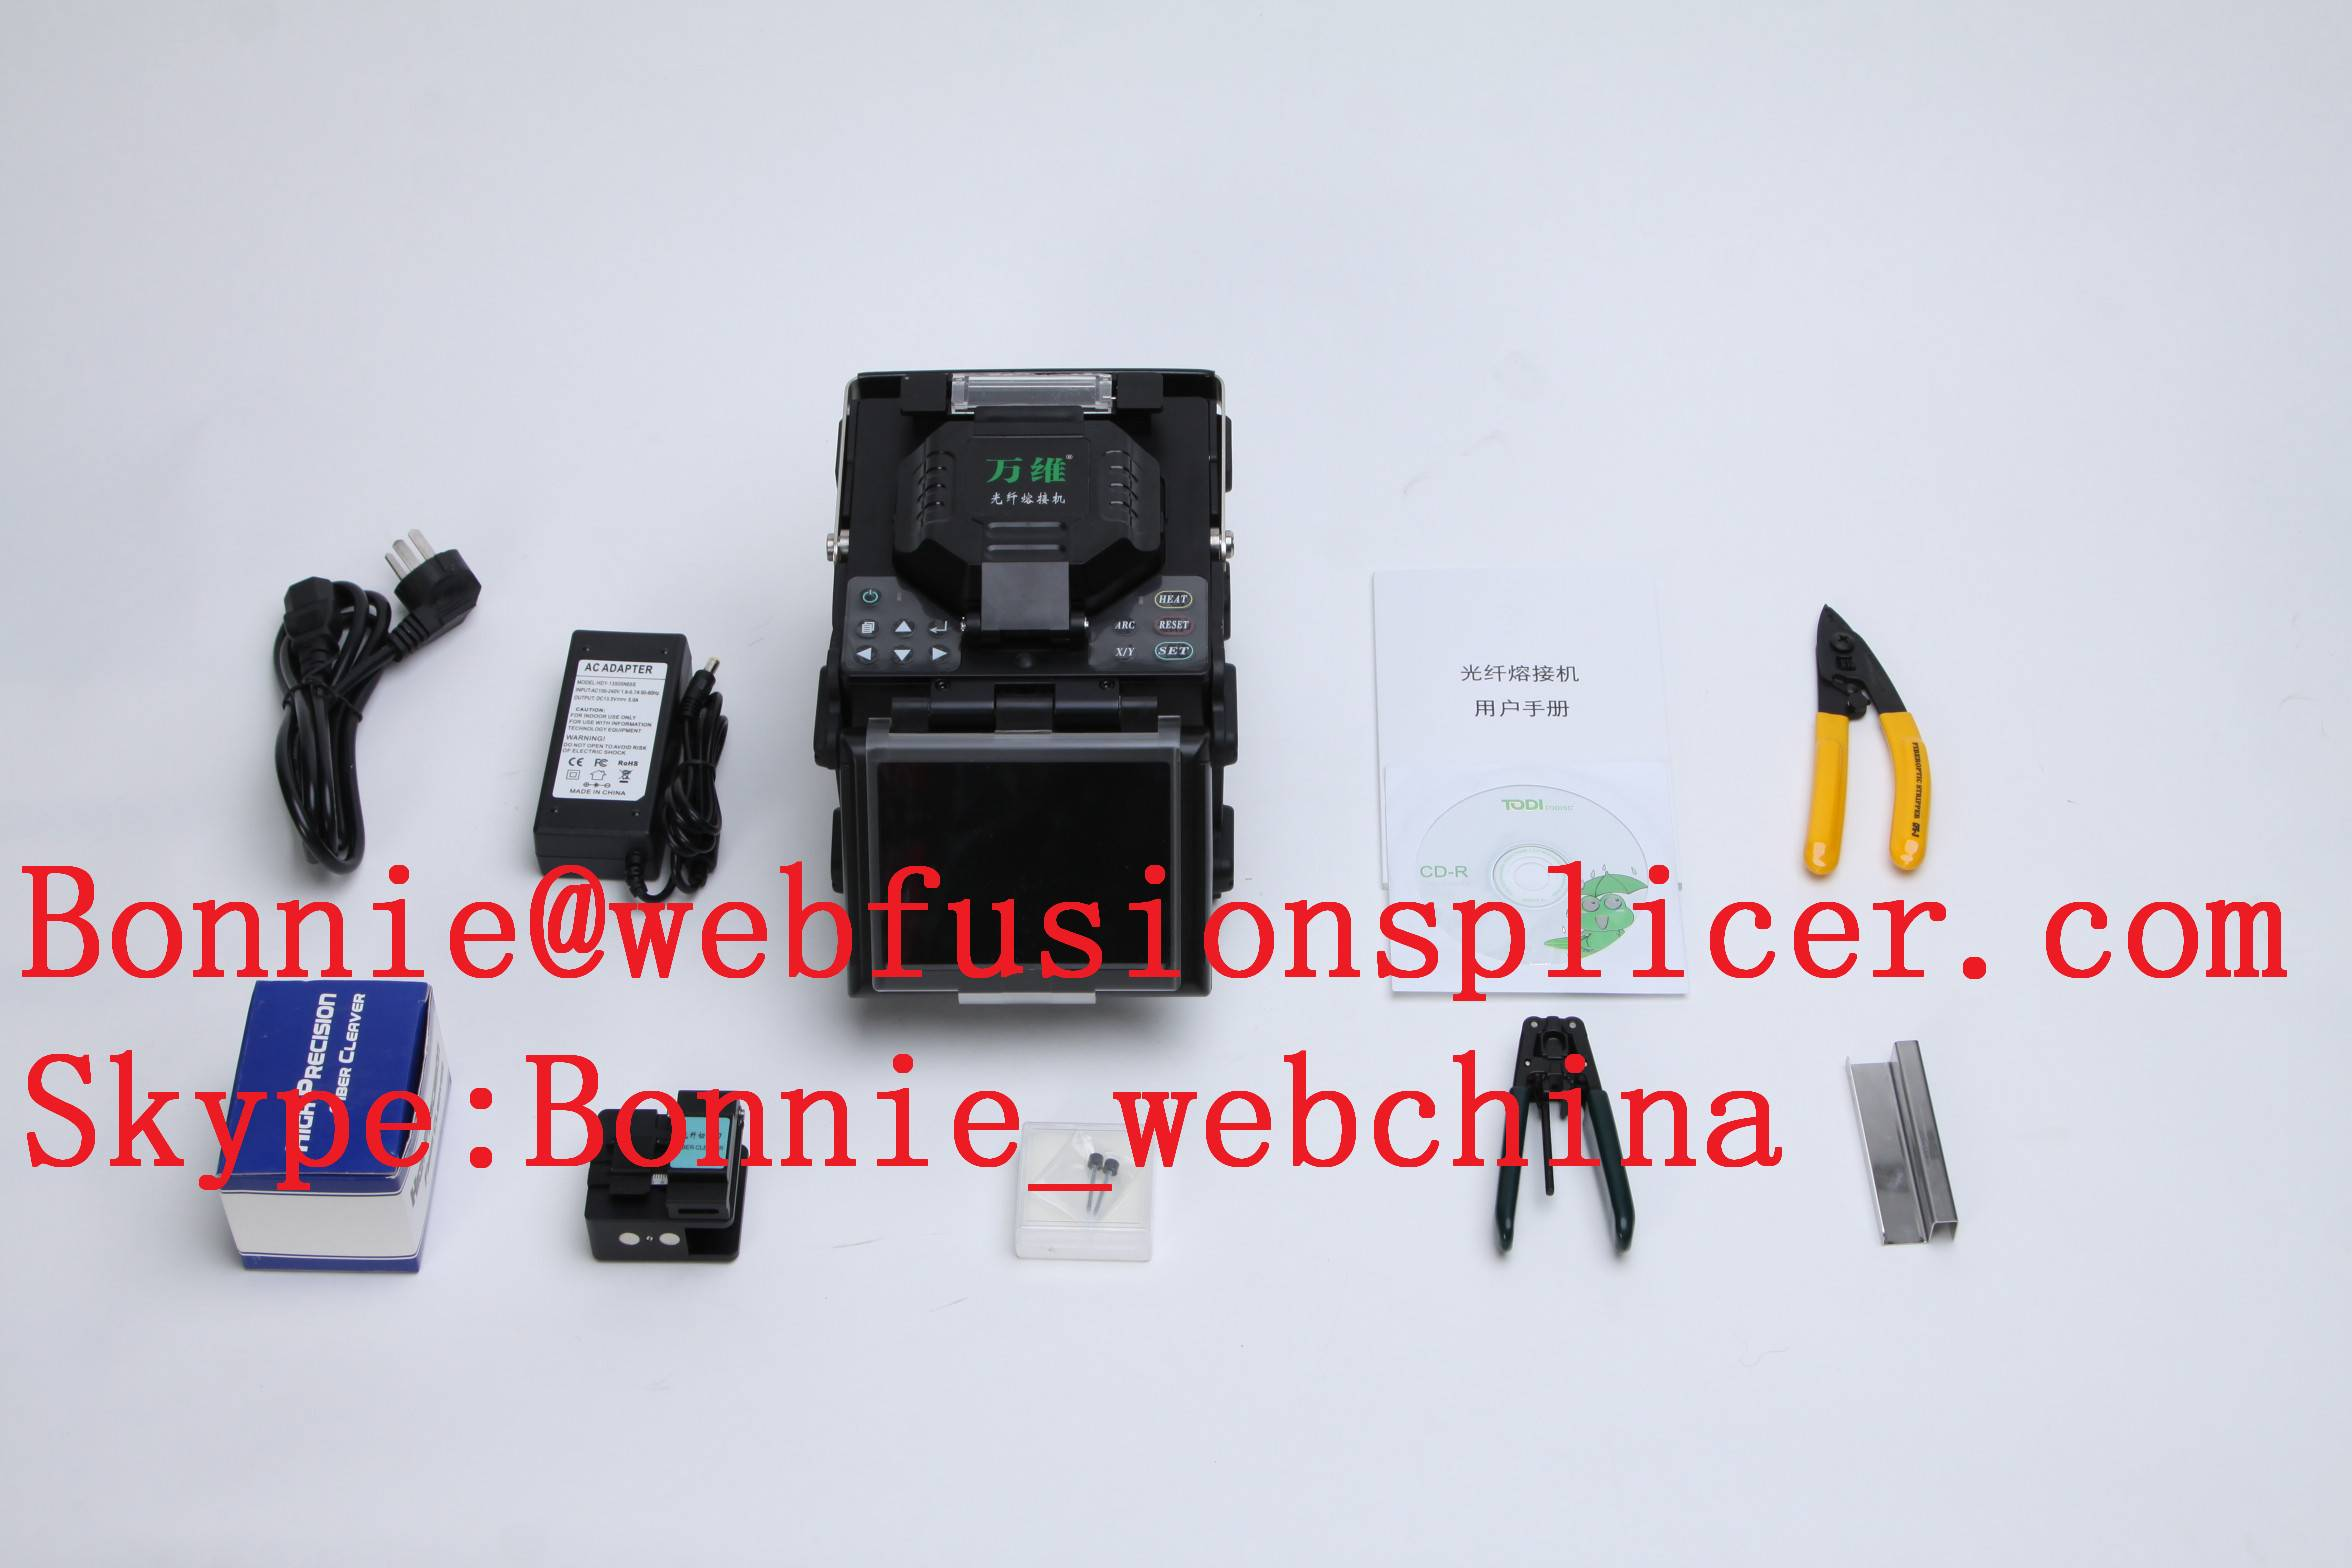 Chinese Great Brand Optic Fusion Splicer, Combine Machine for Optical Fiber